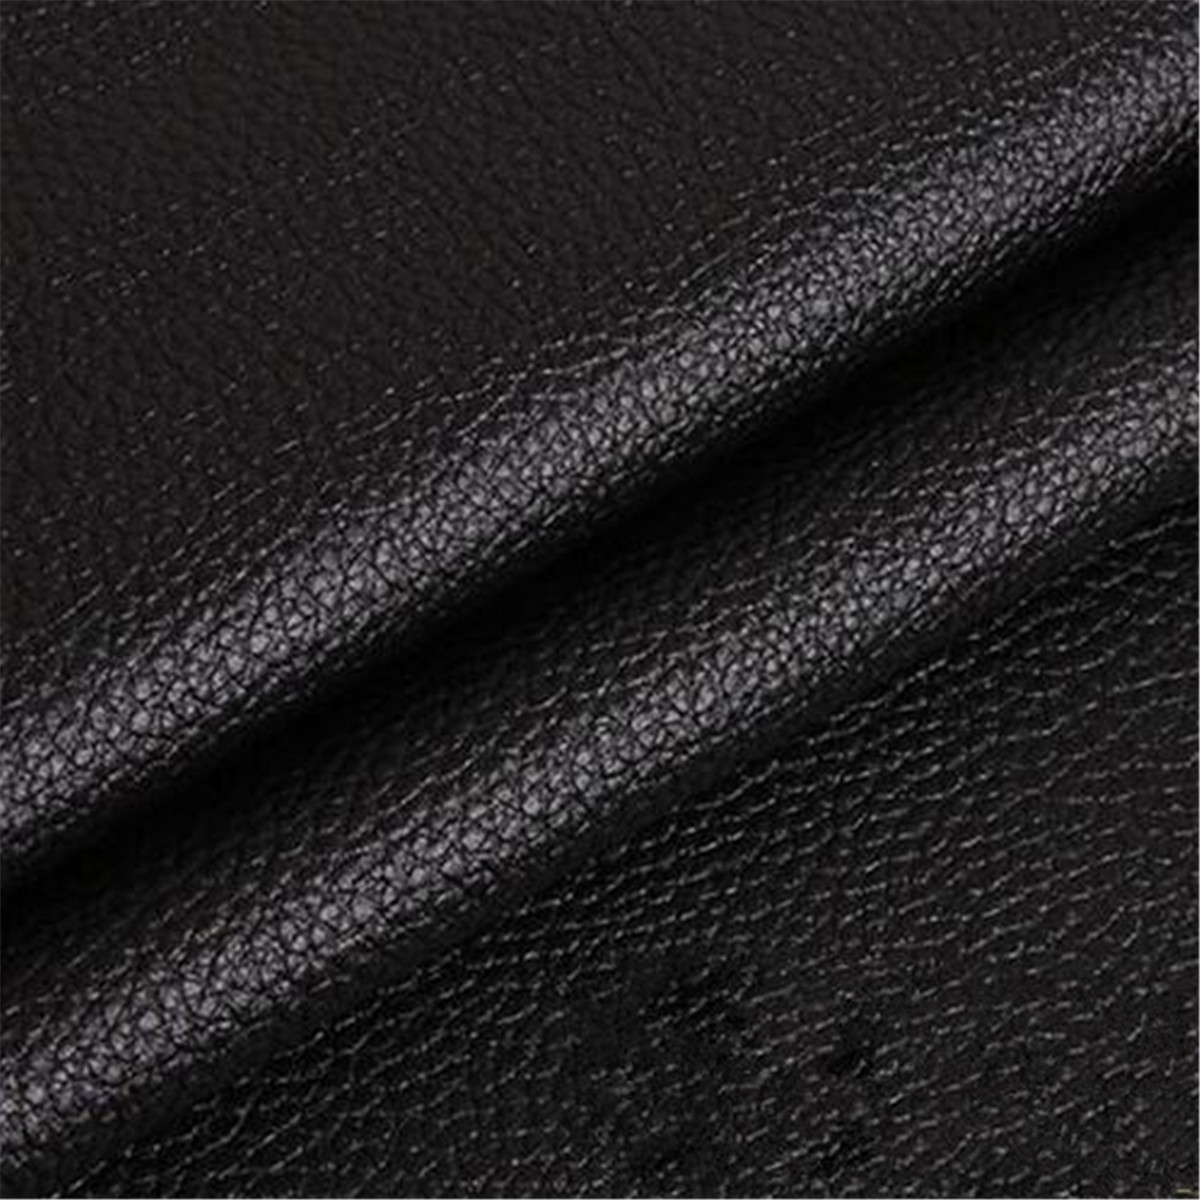 Leather Or Fabric Sofa With Dogs: 45x45cm Leather Fabric For Bag Clothing Sewing Sofa DIY